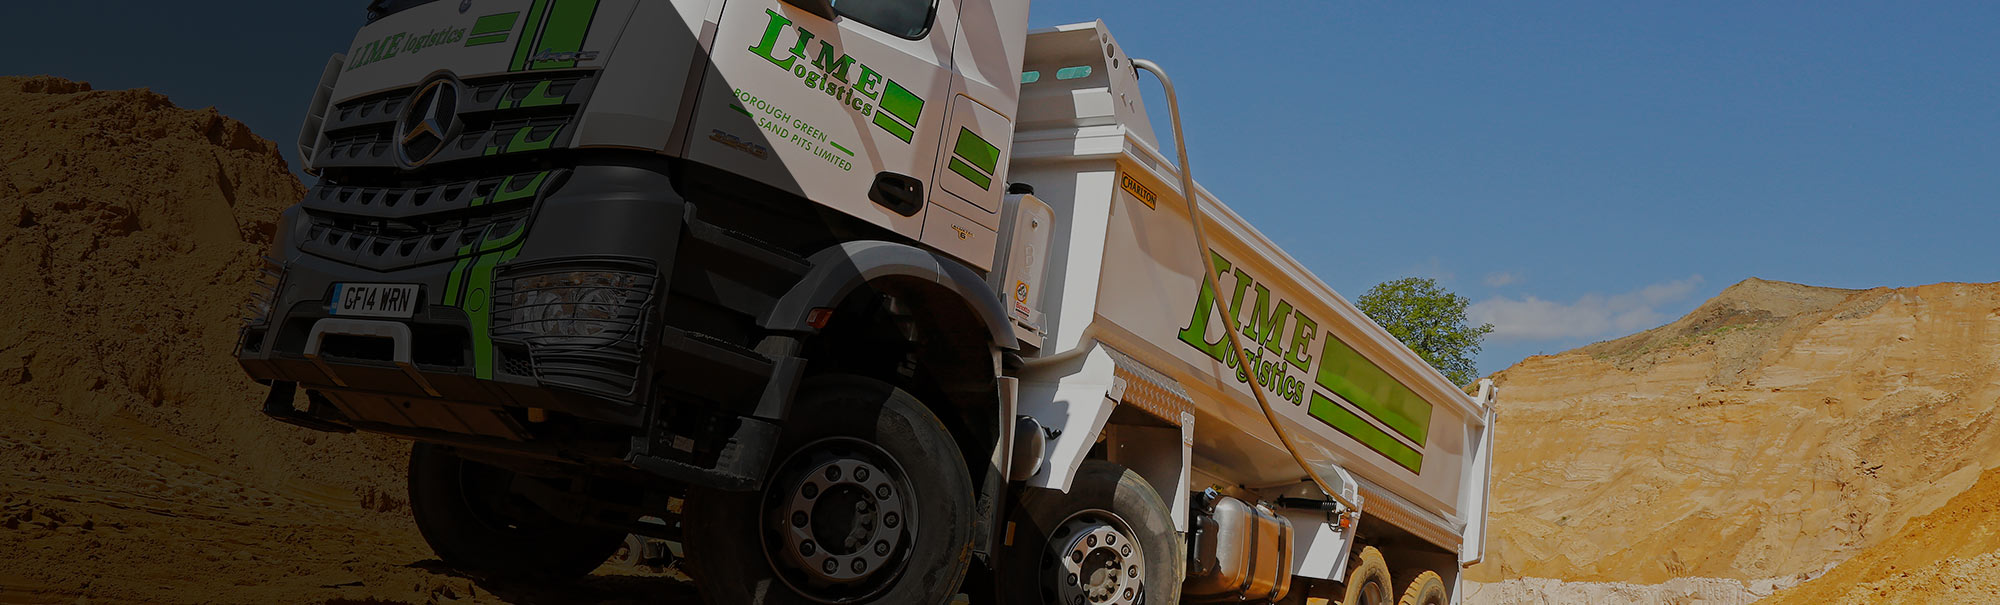 https://www.lime-logistics.co.uk/wp-content/uploads/2014/07/header-bg.jpg